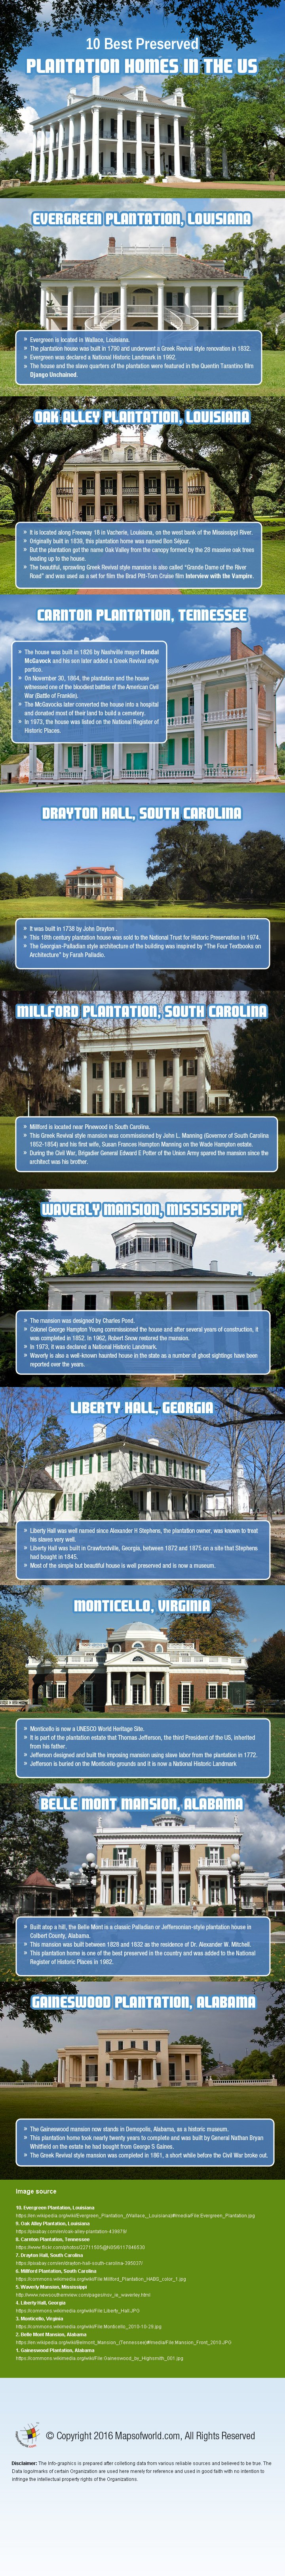 Infographic on 10 Best Preserved Plantation Homes In The US